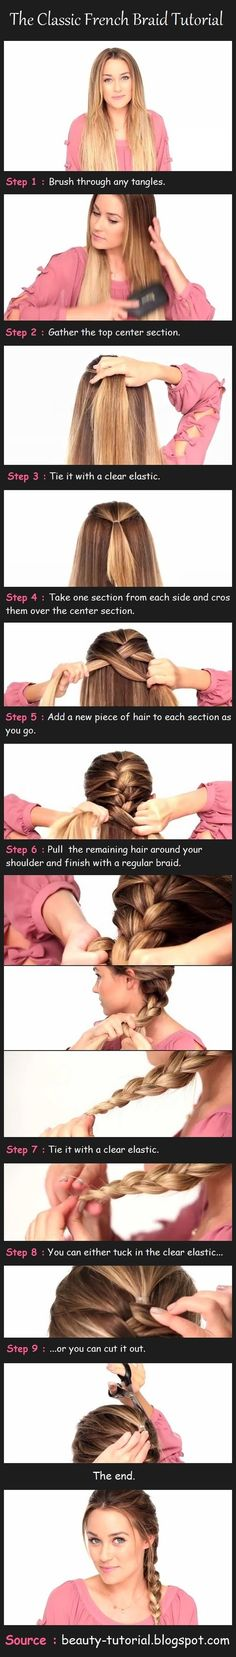 Classic French Braid Tutorial